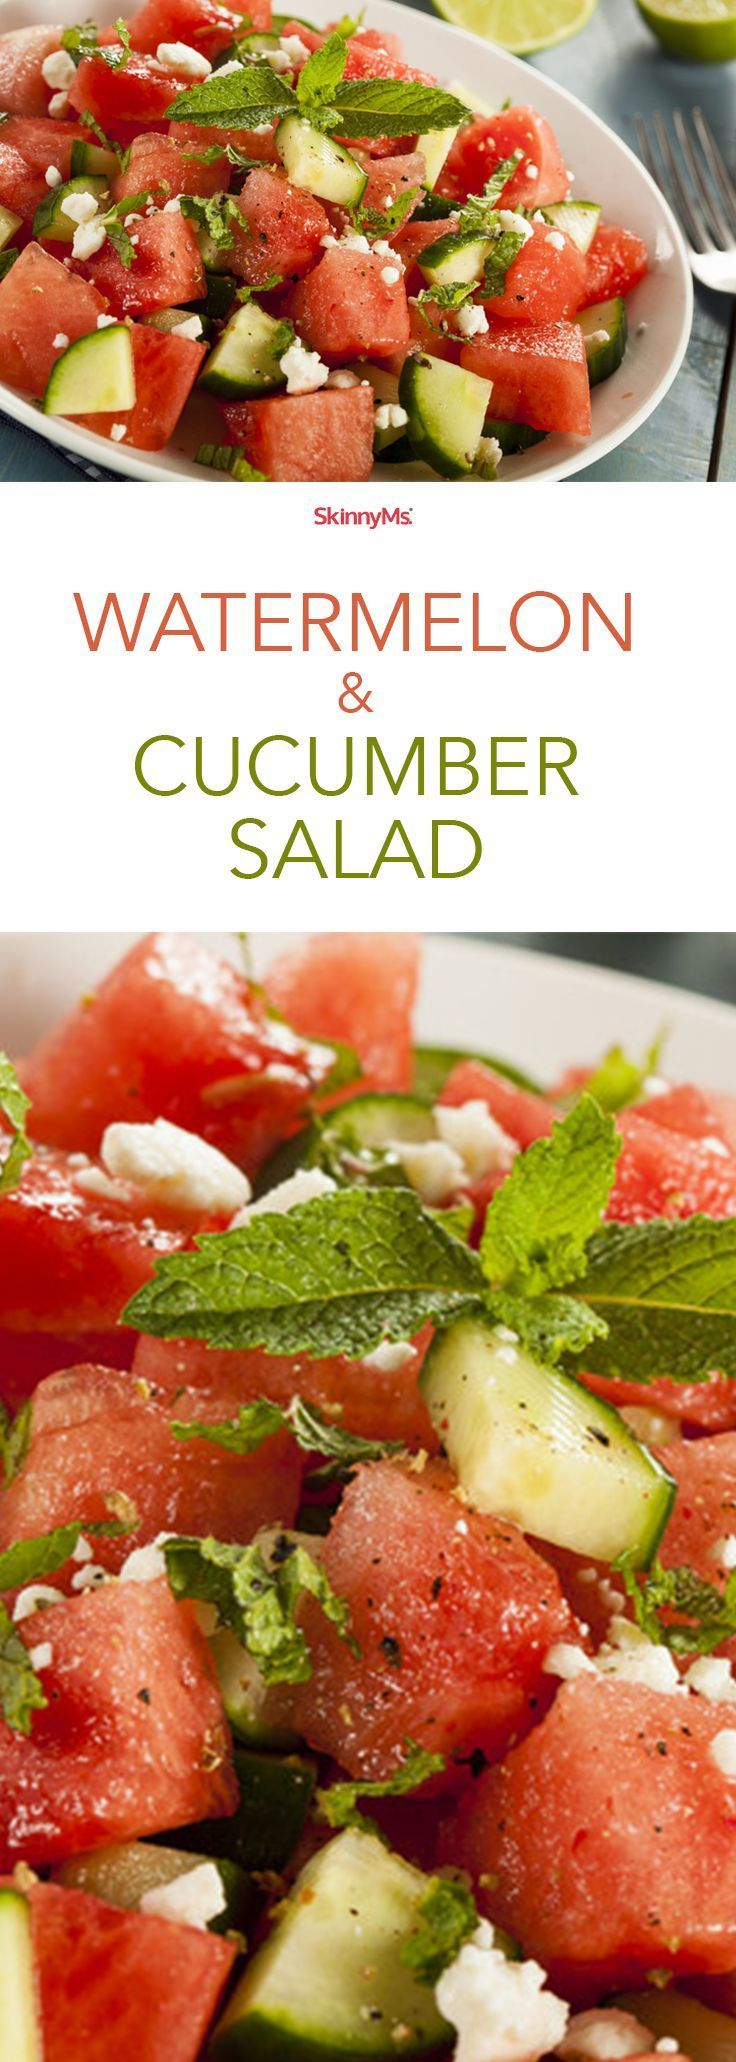 Watermelon & Cucumber Salad - watermelon, cucumber, feta, mint, honey, lime...ahhhh, so heavenly & delightful.  Only 134 calories per serving!